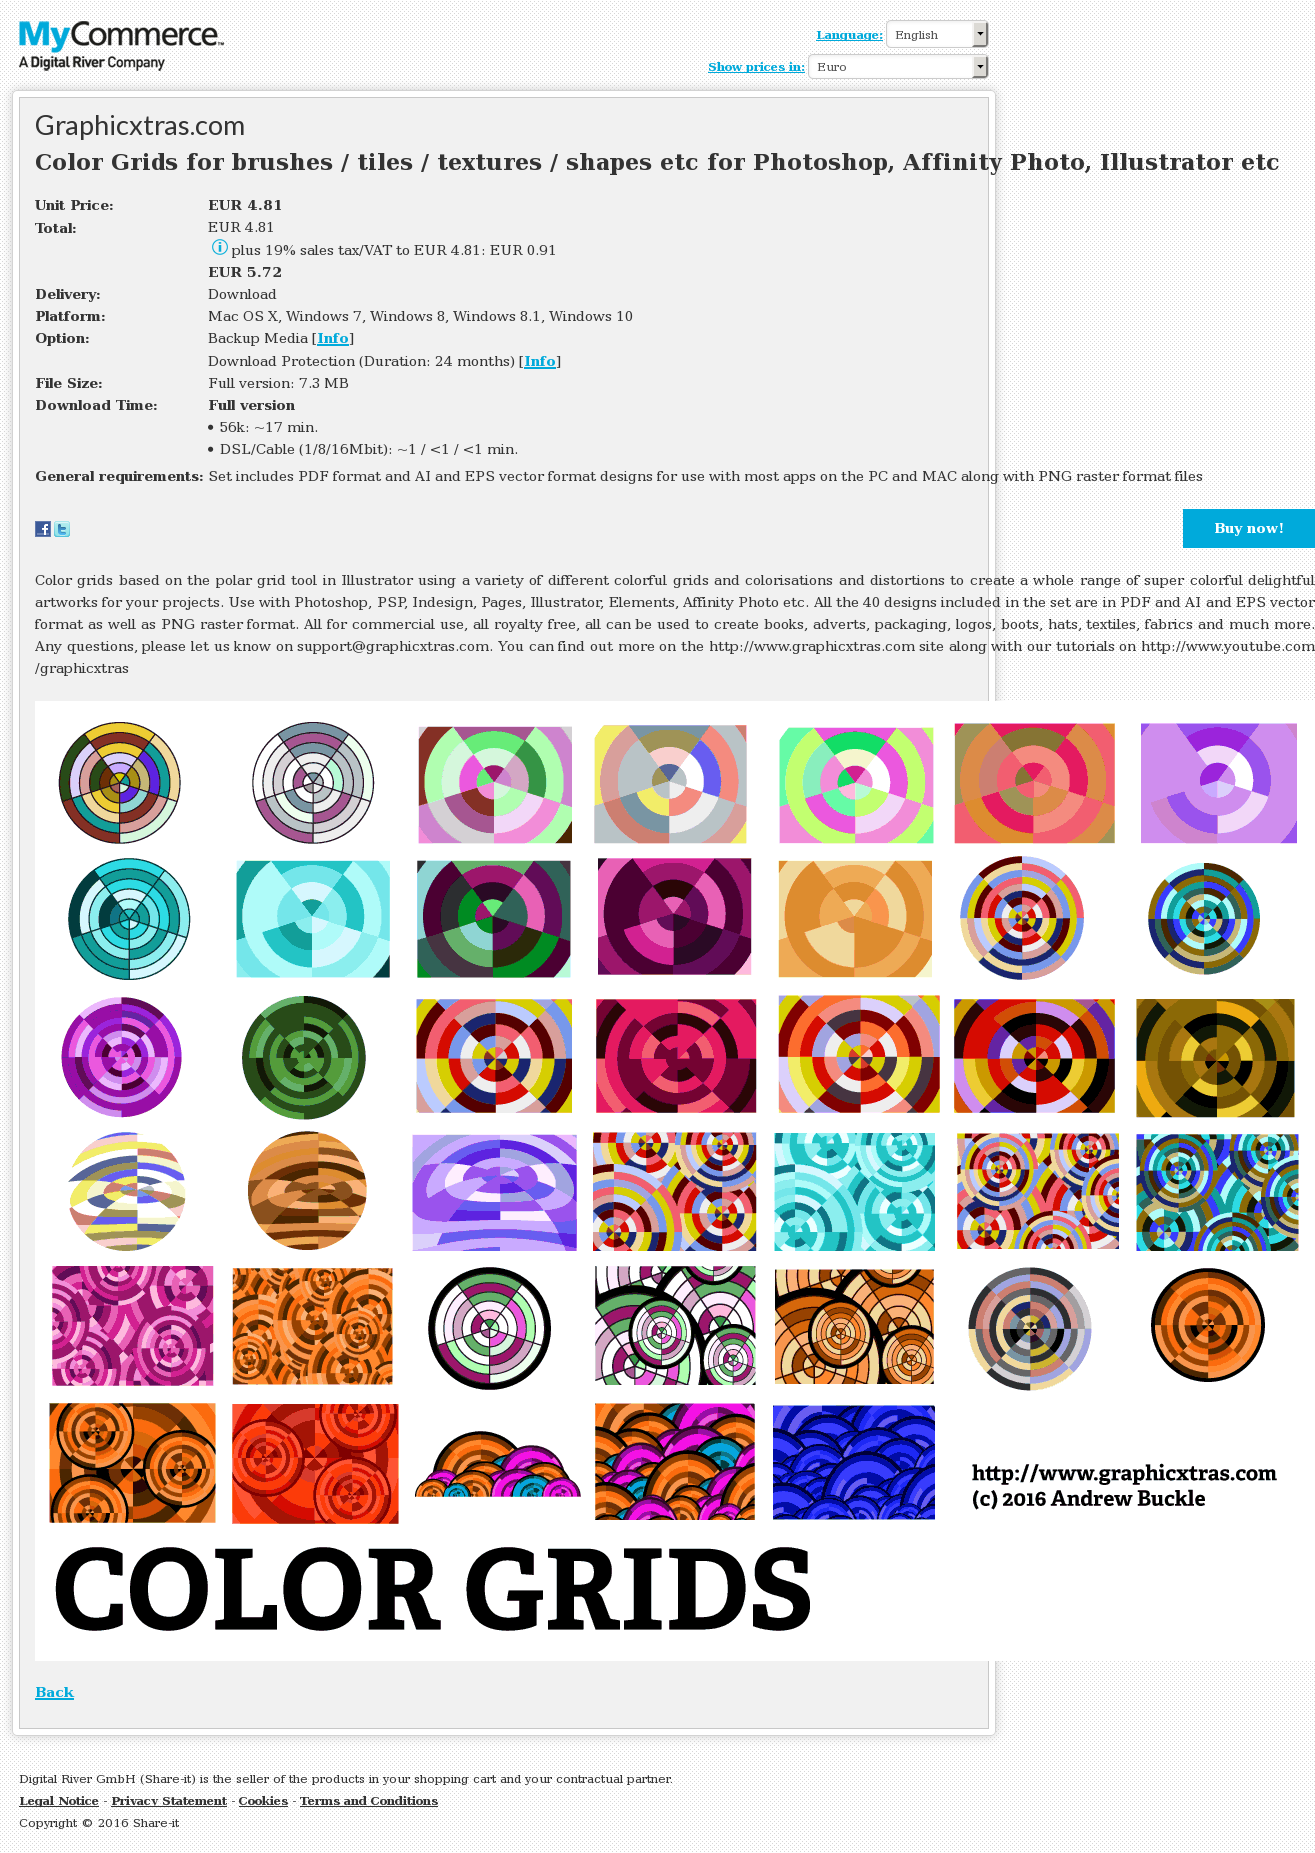 Color Grids for brushes / tiles / textures / shapes etc for Photoshop, Affinity Photo, Illustrator etc